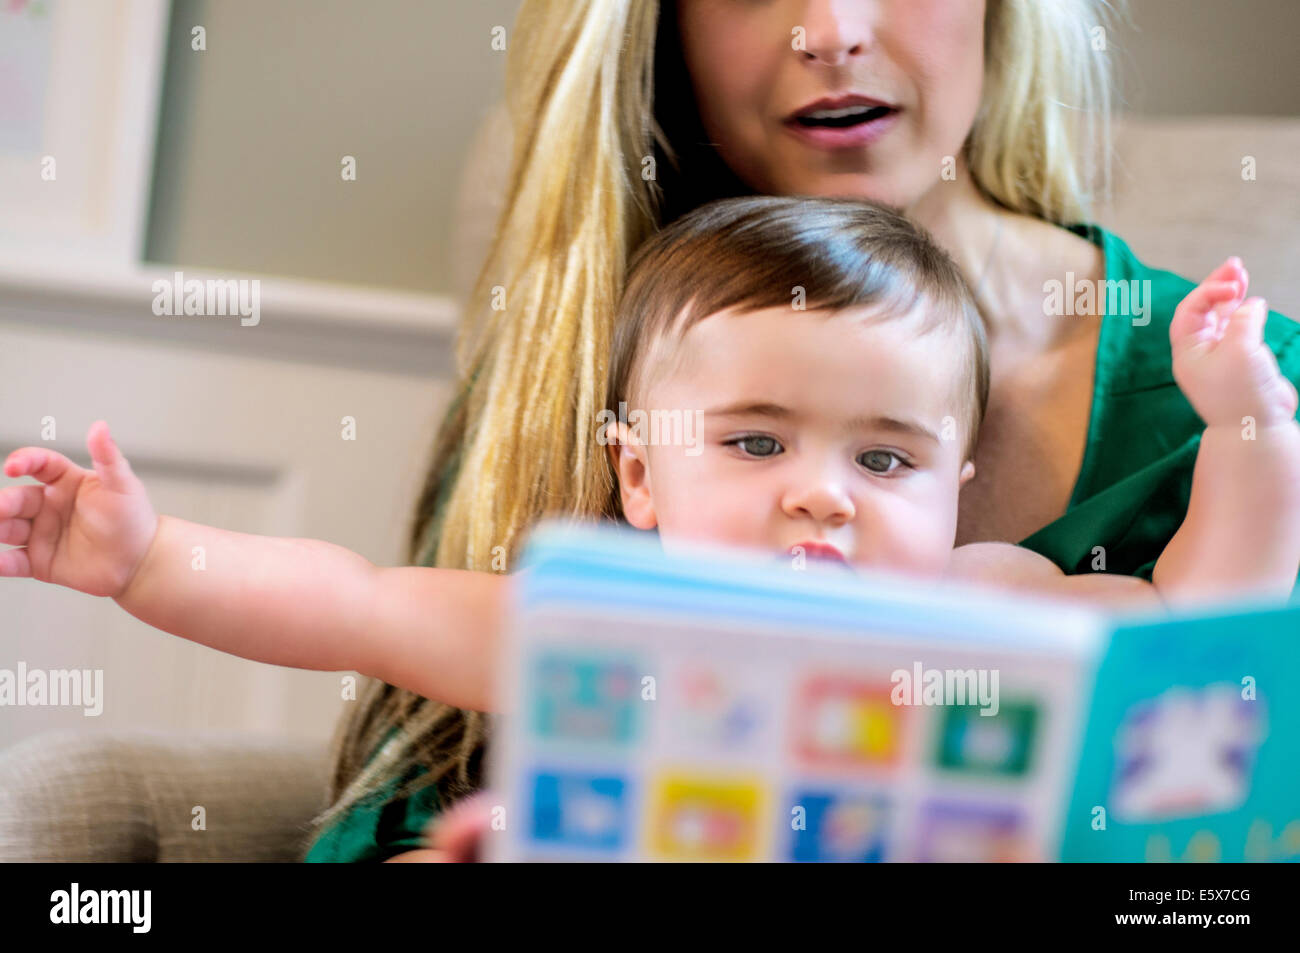 Mid adult mother reading picture book to baby daughter - Stock Image